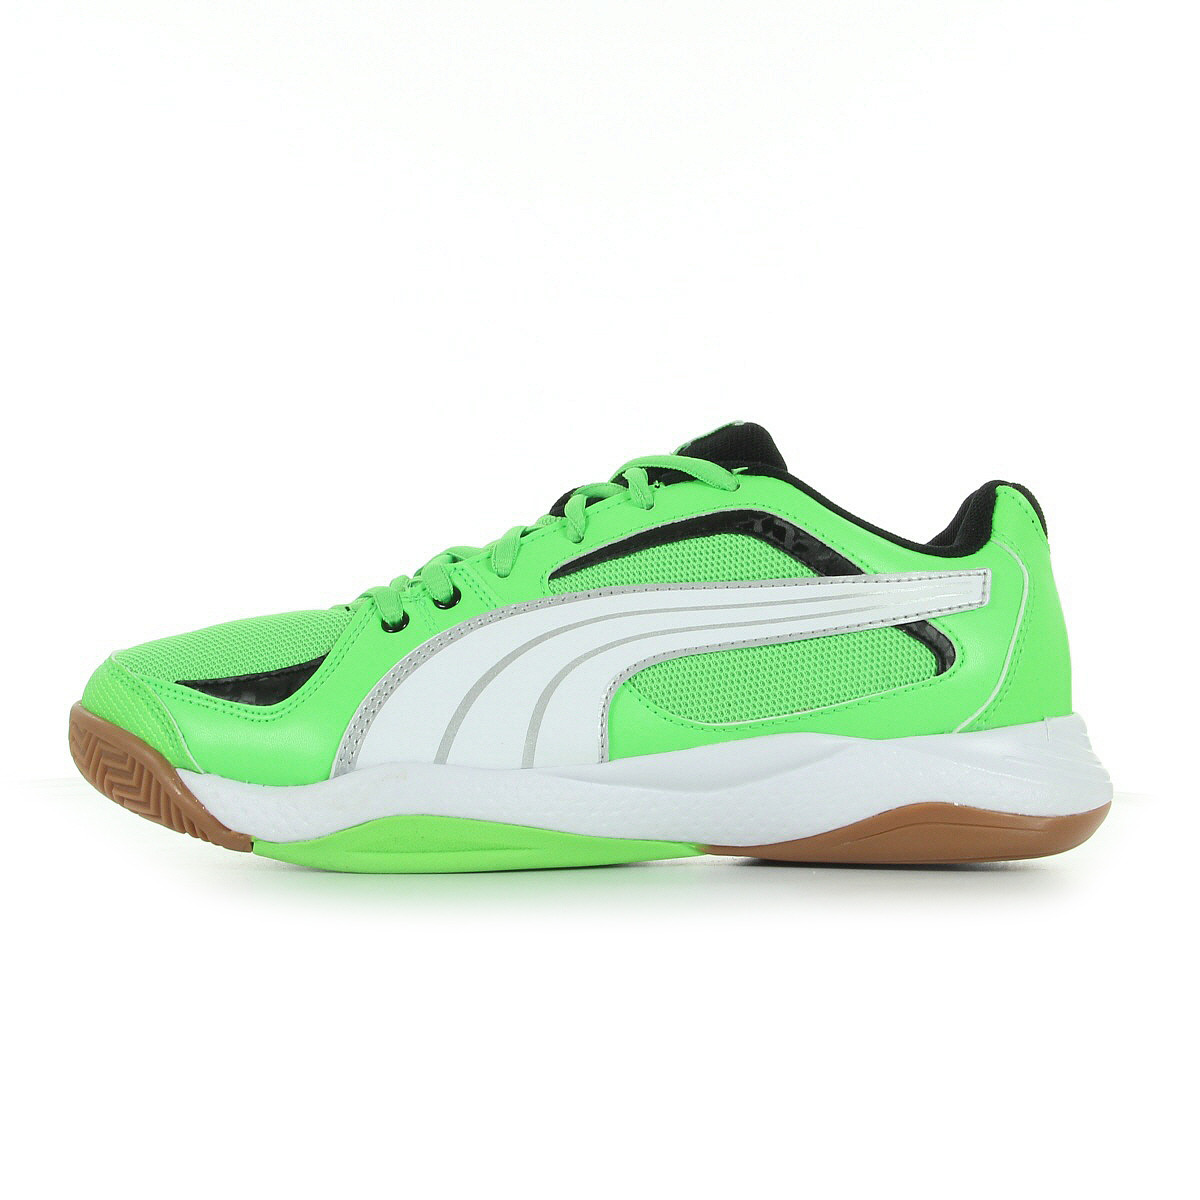 chaussures handball puma gar on ballesta jr taille vert fluo verte textile ebay. Black Bedroom Furniture Sets. Home Design Ideas